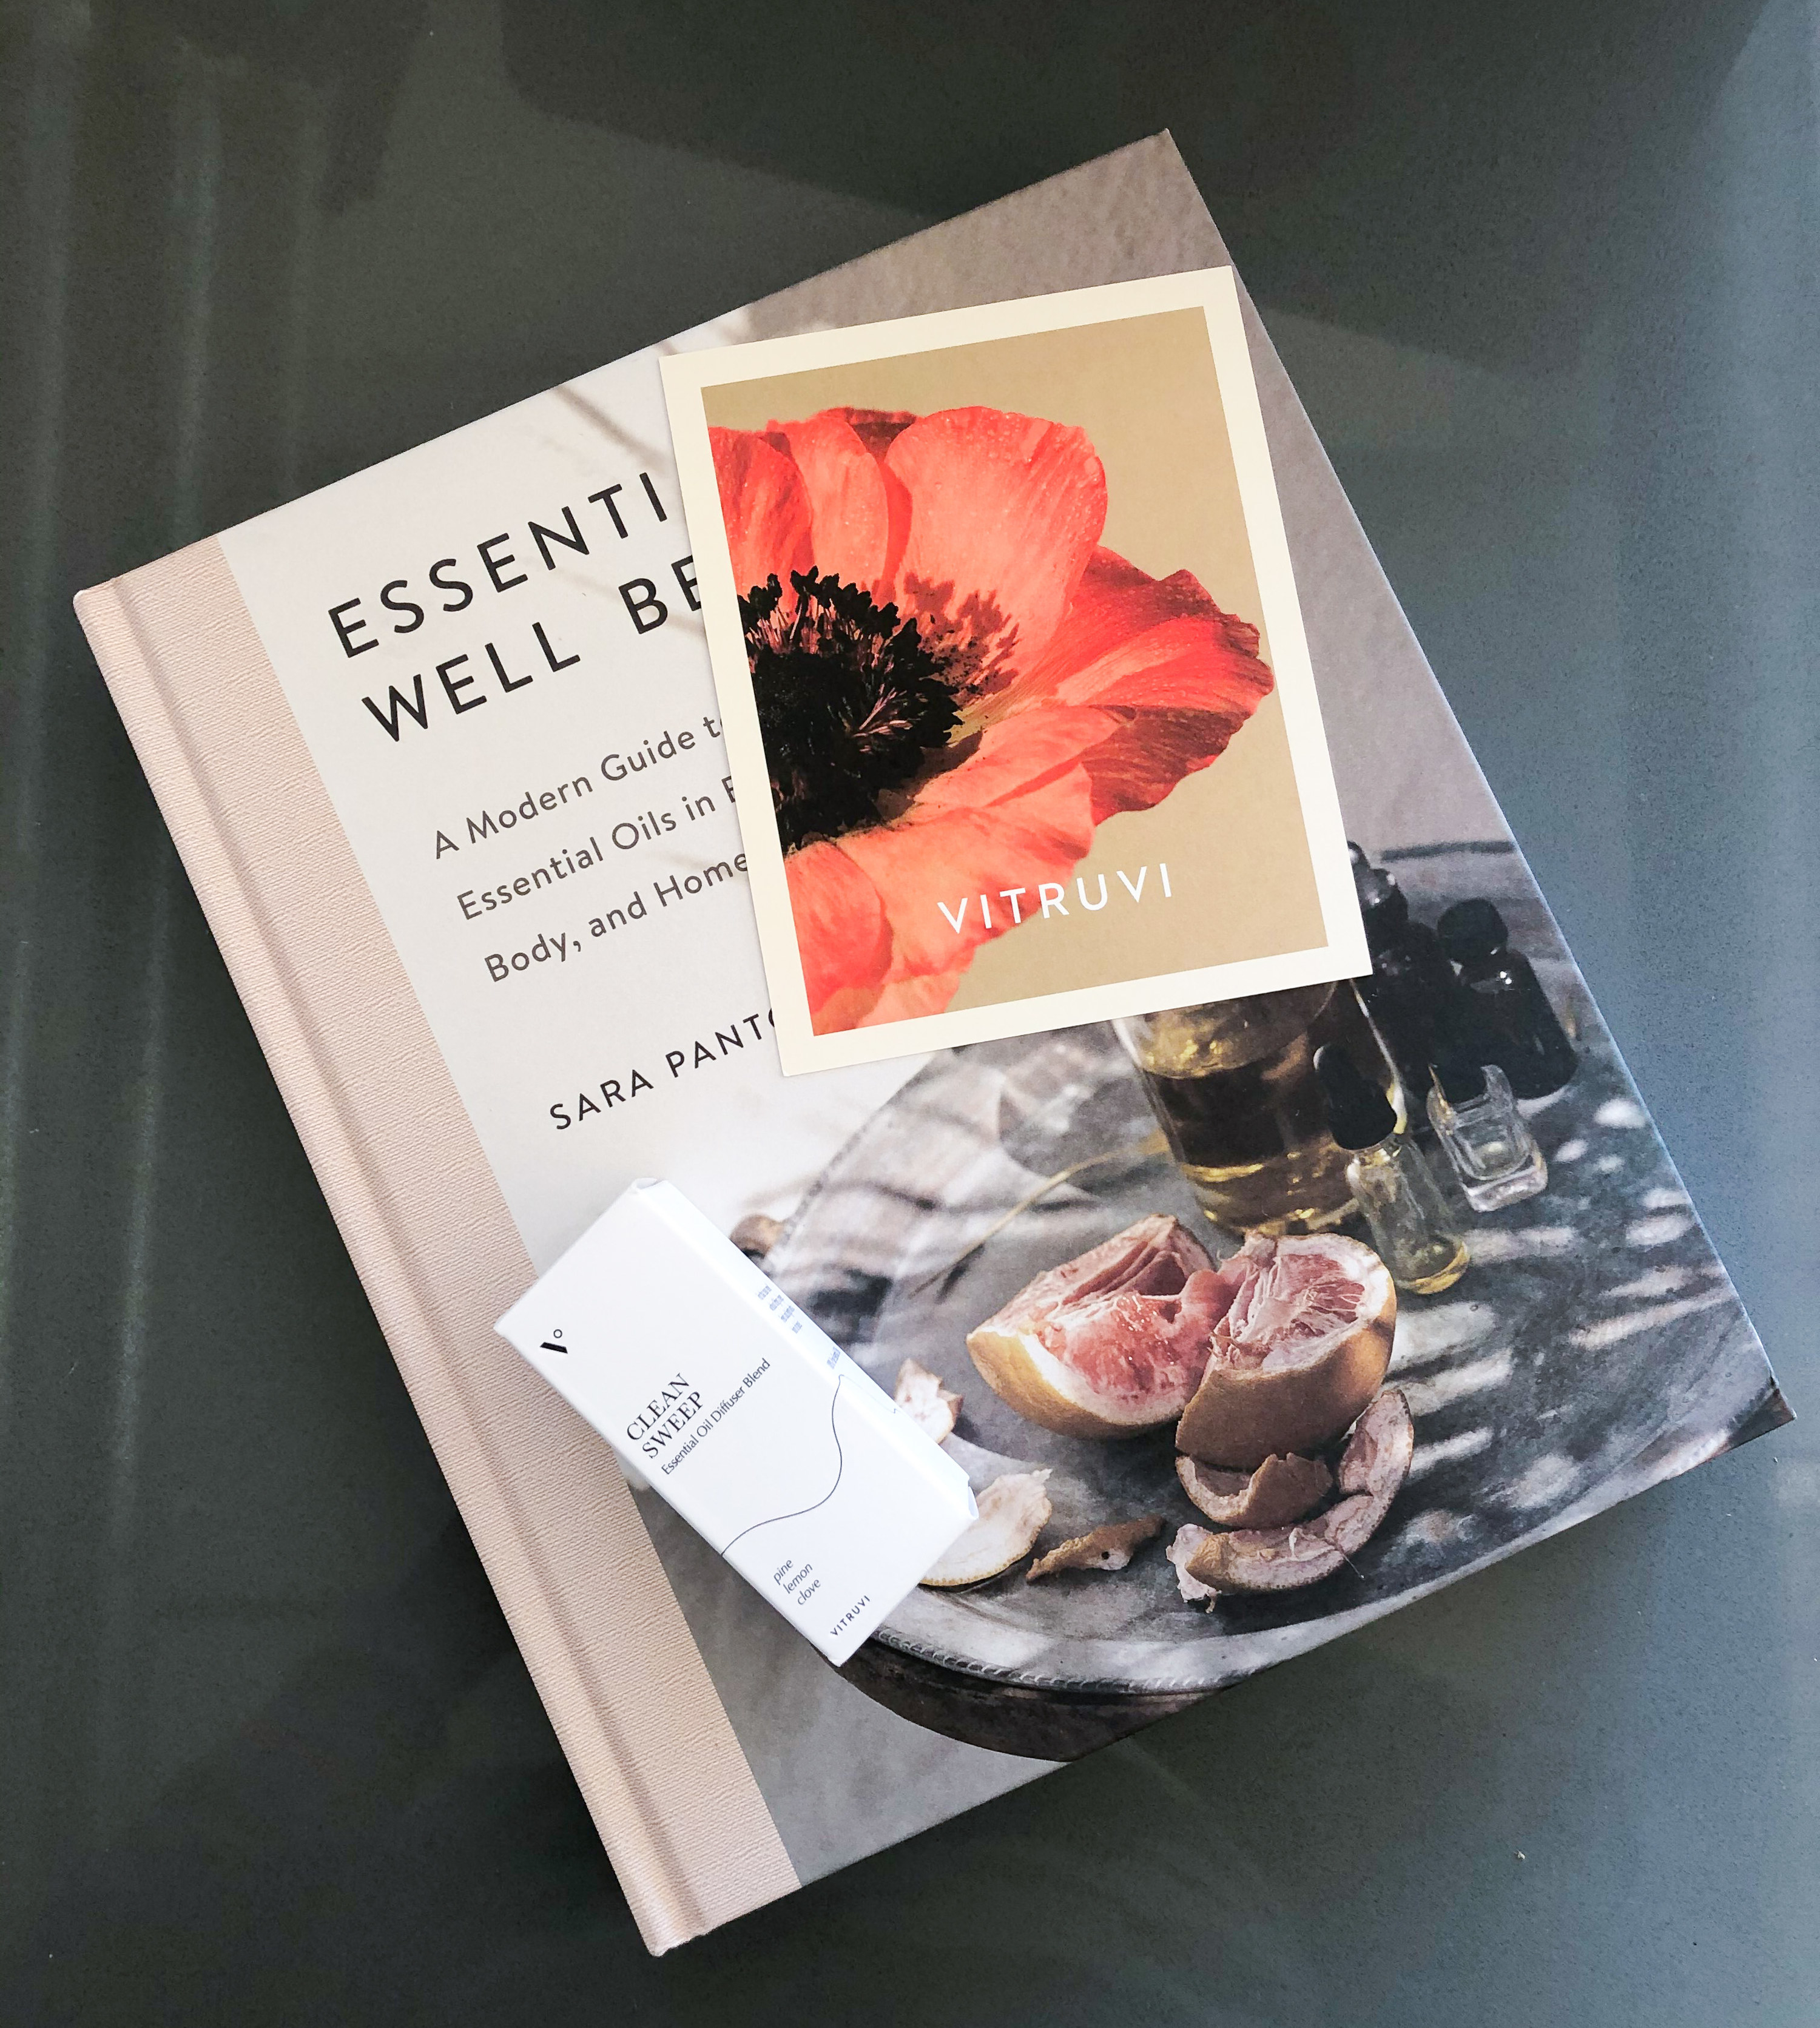 A flatlay of the book on a kitchen counter topped with essential oils